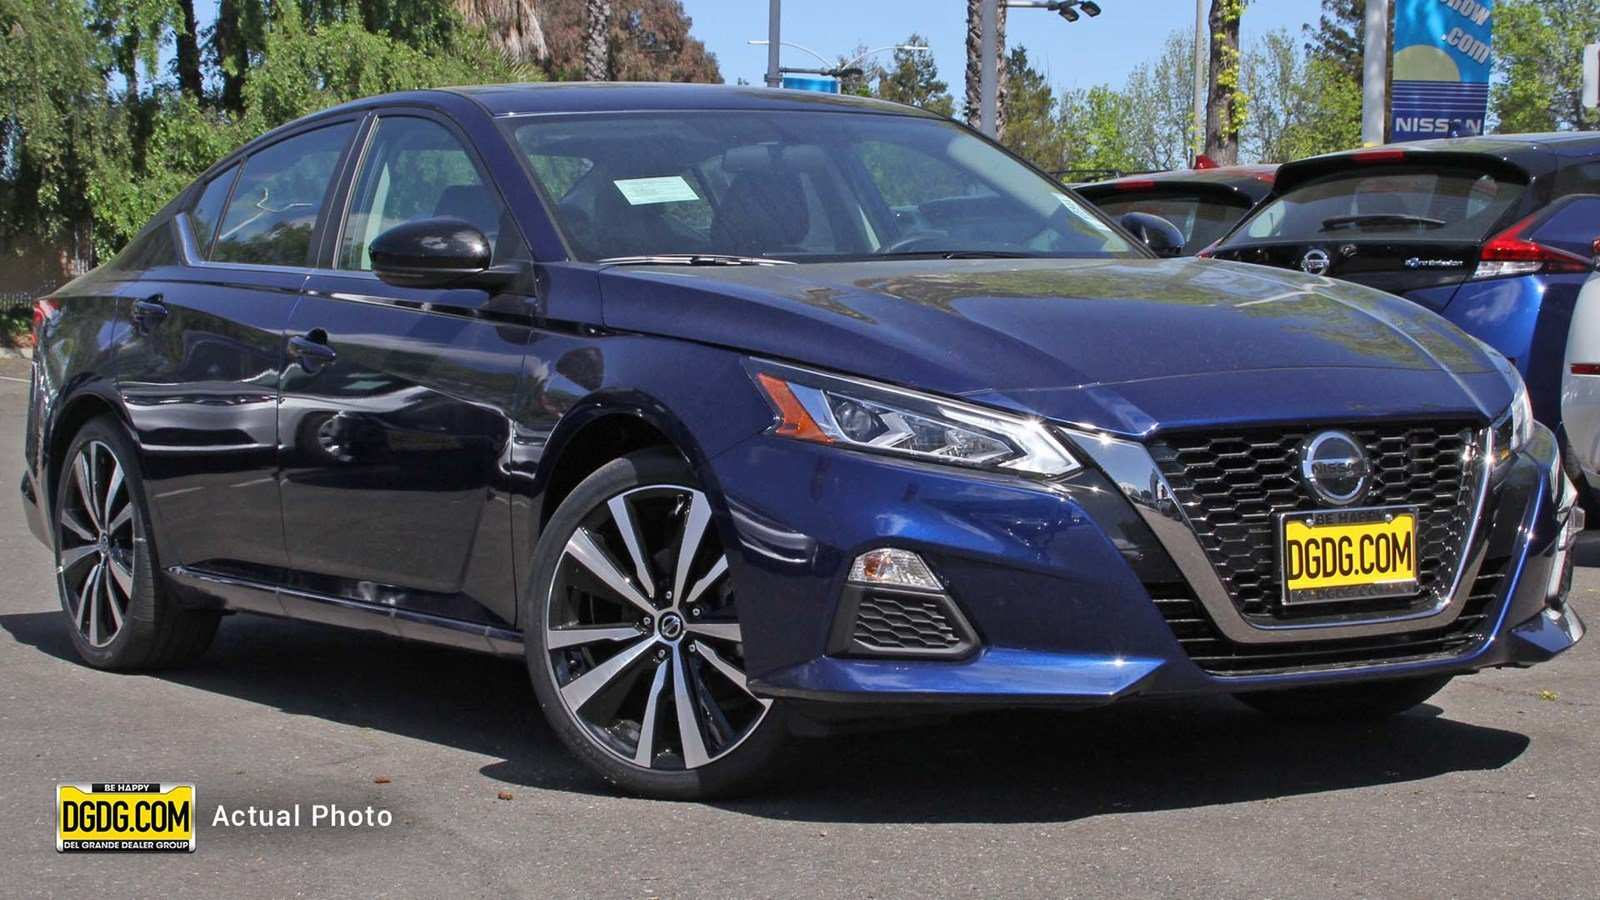 31 Best Review Nissan Altima Sr Rumors by Nissan Altima Sr